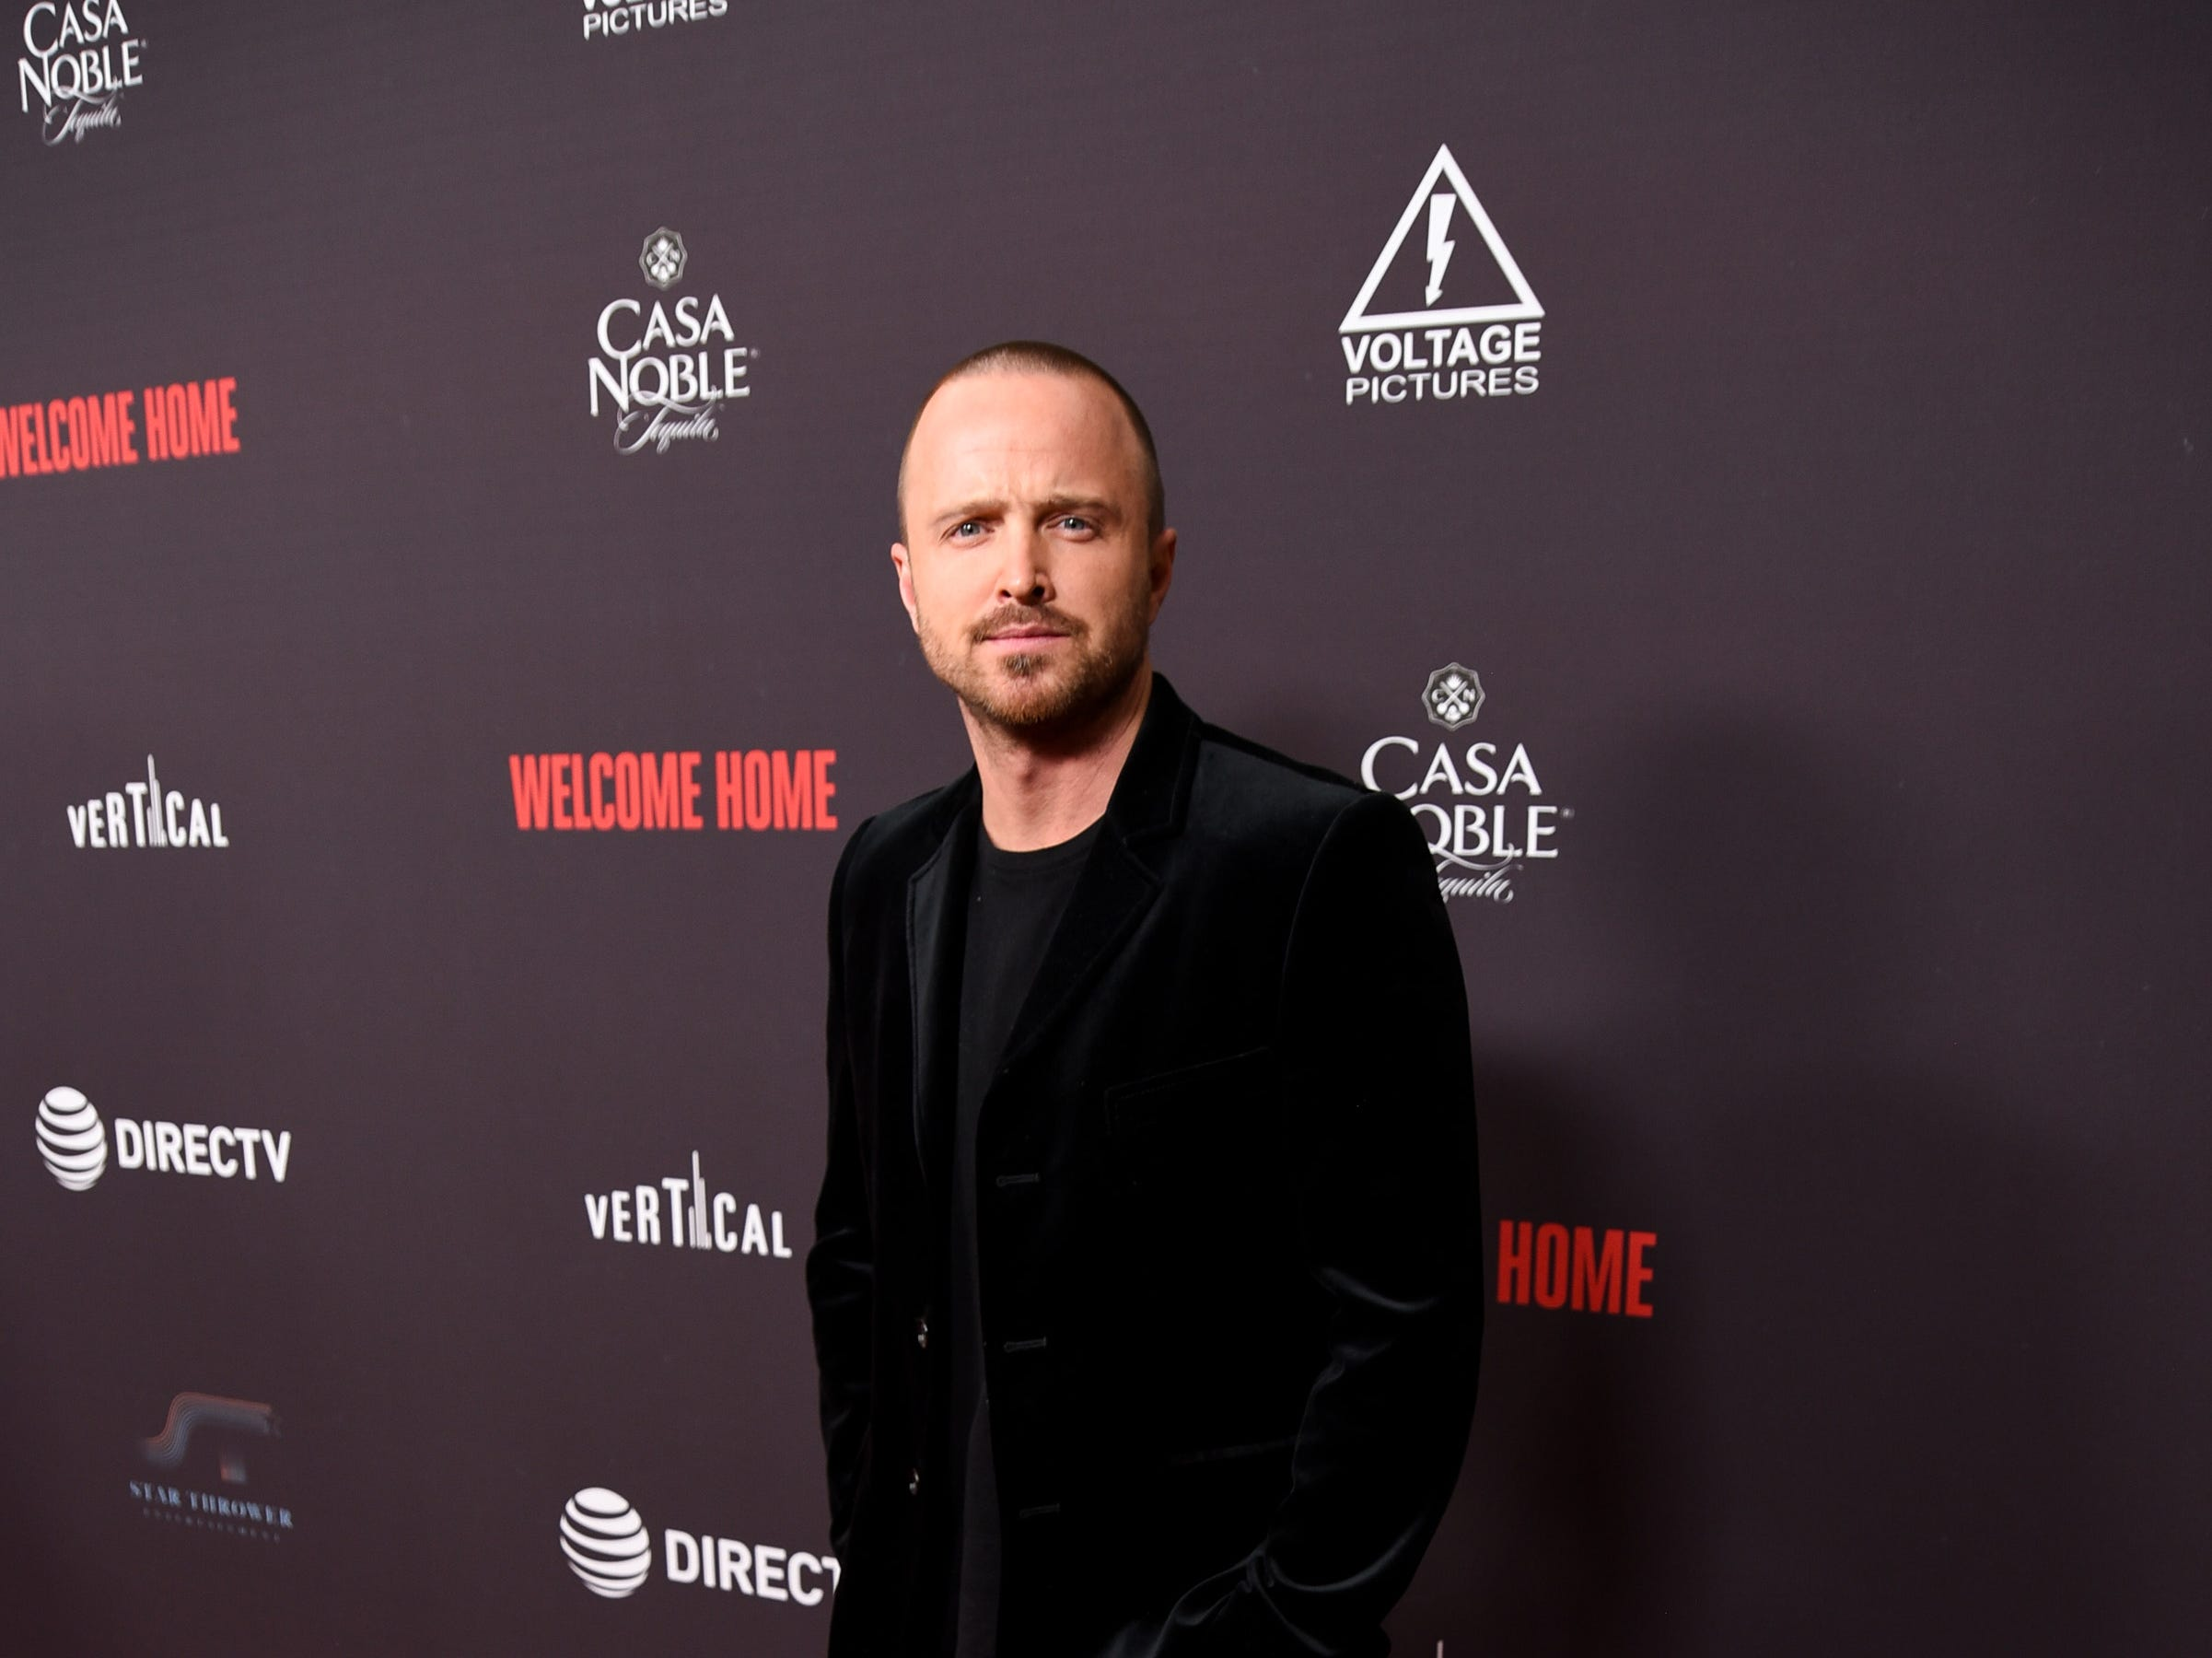 "WEST HOLLYWOOD, CALIFORNIA - NOVEMBER 04: Aaron Paul attends ""Welcome Home"" Premiere at The London West Hollywood on November 04, 2018 in West Hollywood, California. (Photo by Presley Ann/Getty Images) ORG XMIT: 775245895 ORIG FILE ID: 1063587906"